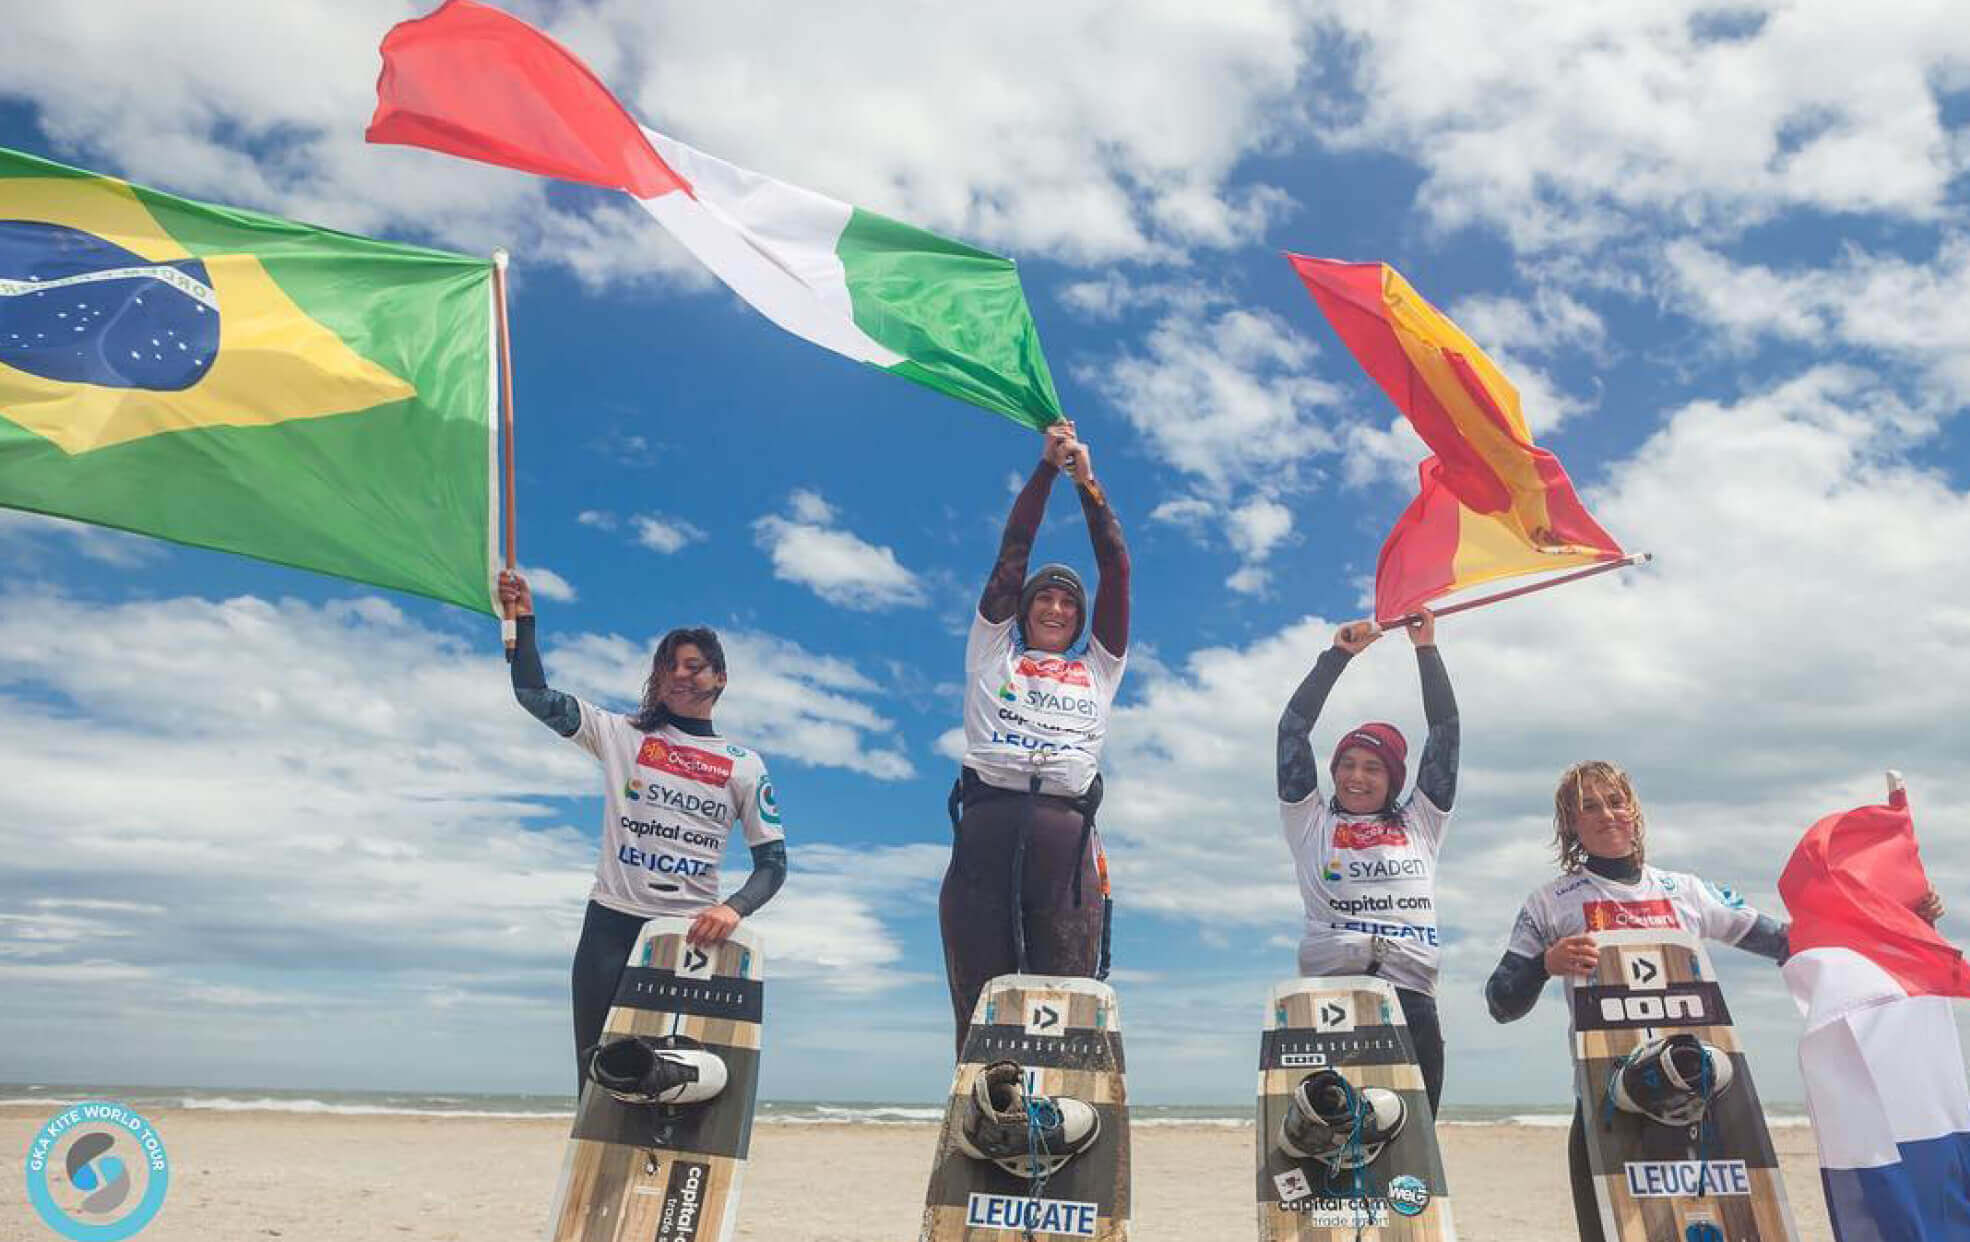 Duotone_Kiteboarding_GKA_World_CUP_2019_2nd_Place_Mika